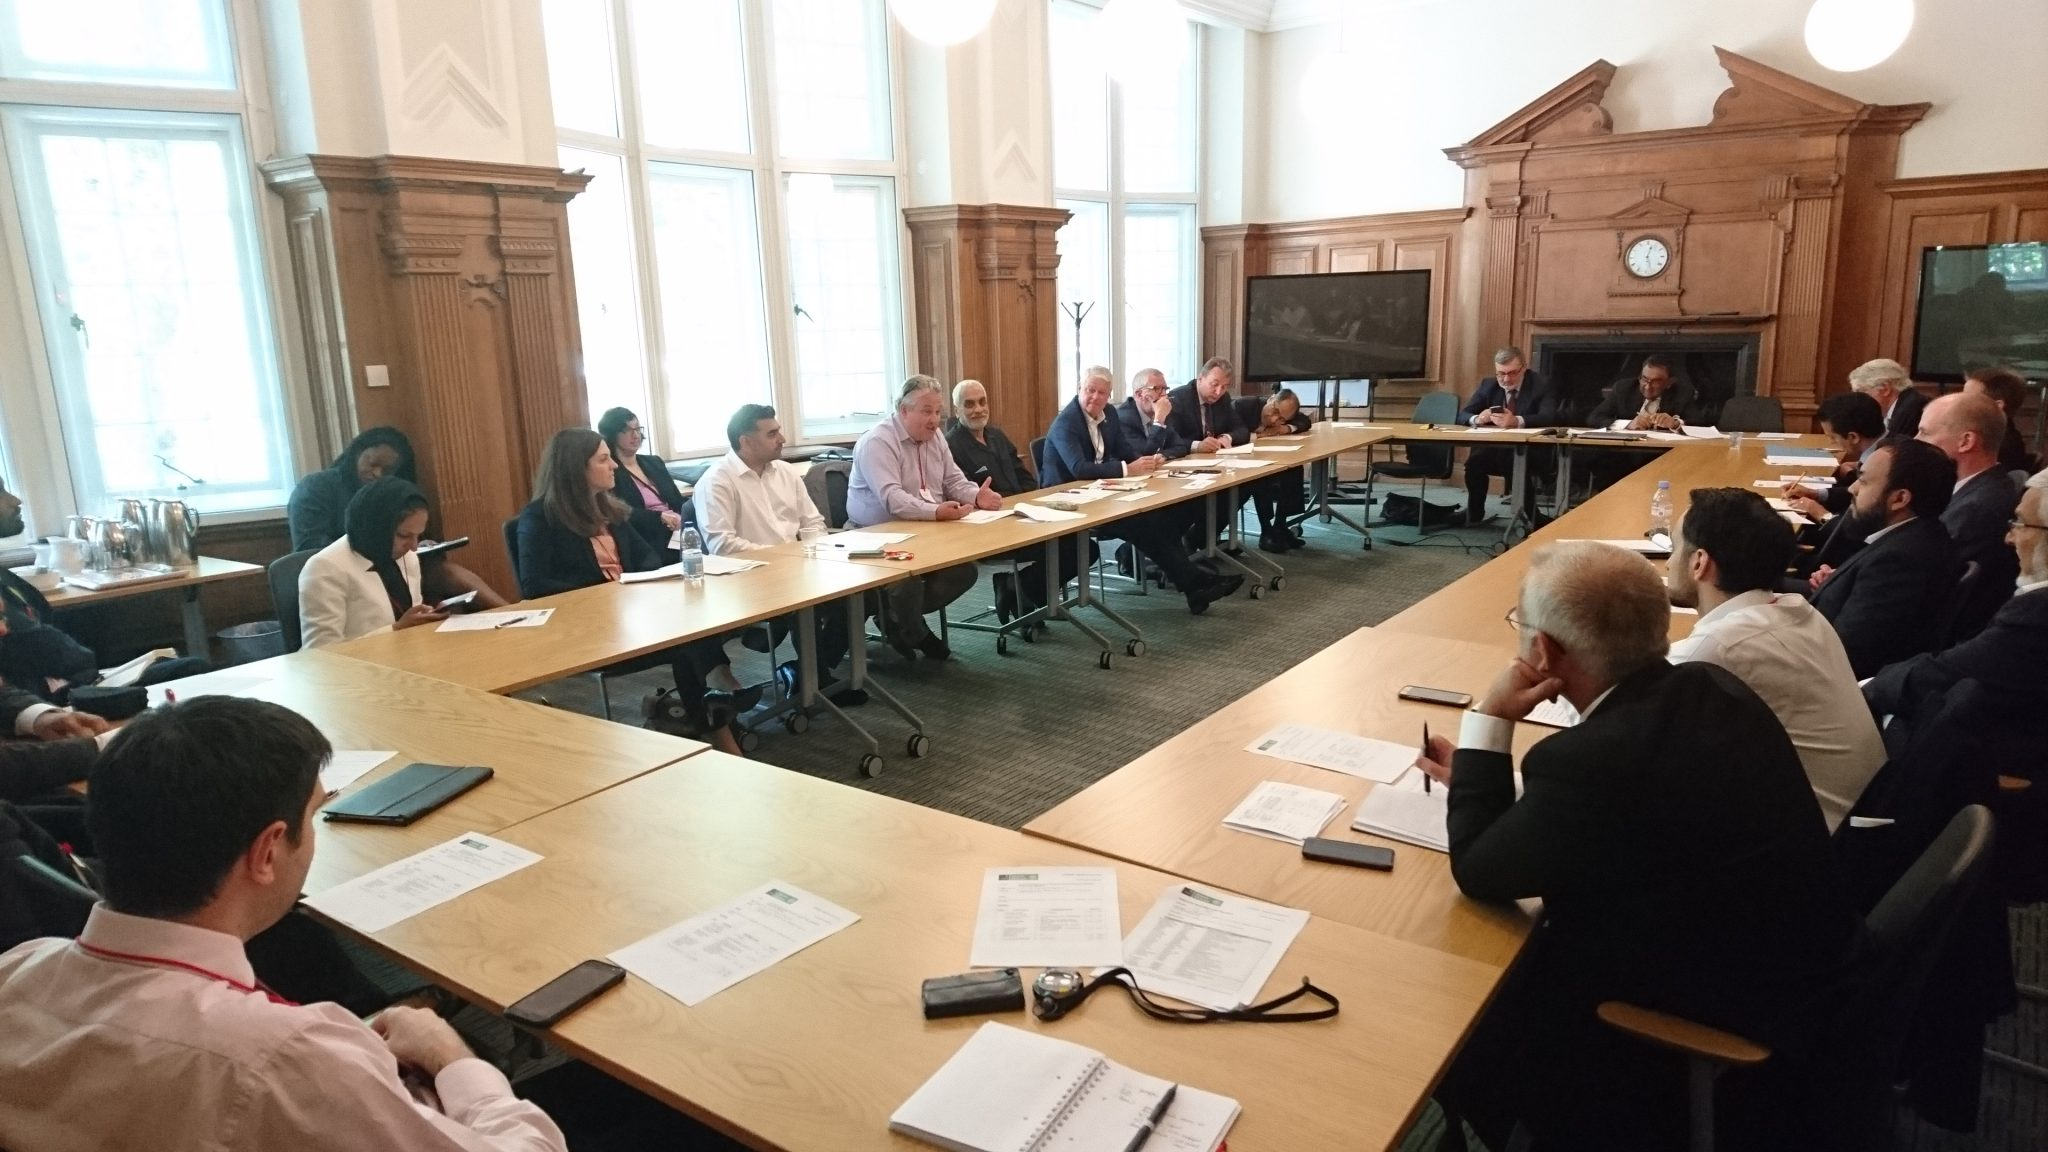 Stakeholders Discuss Awareness And Understanding Of Islamic Finance In UK